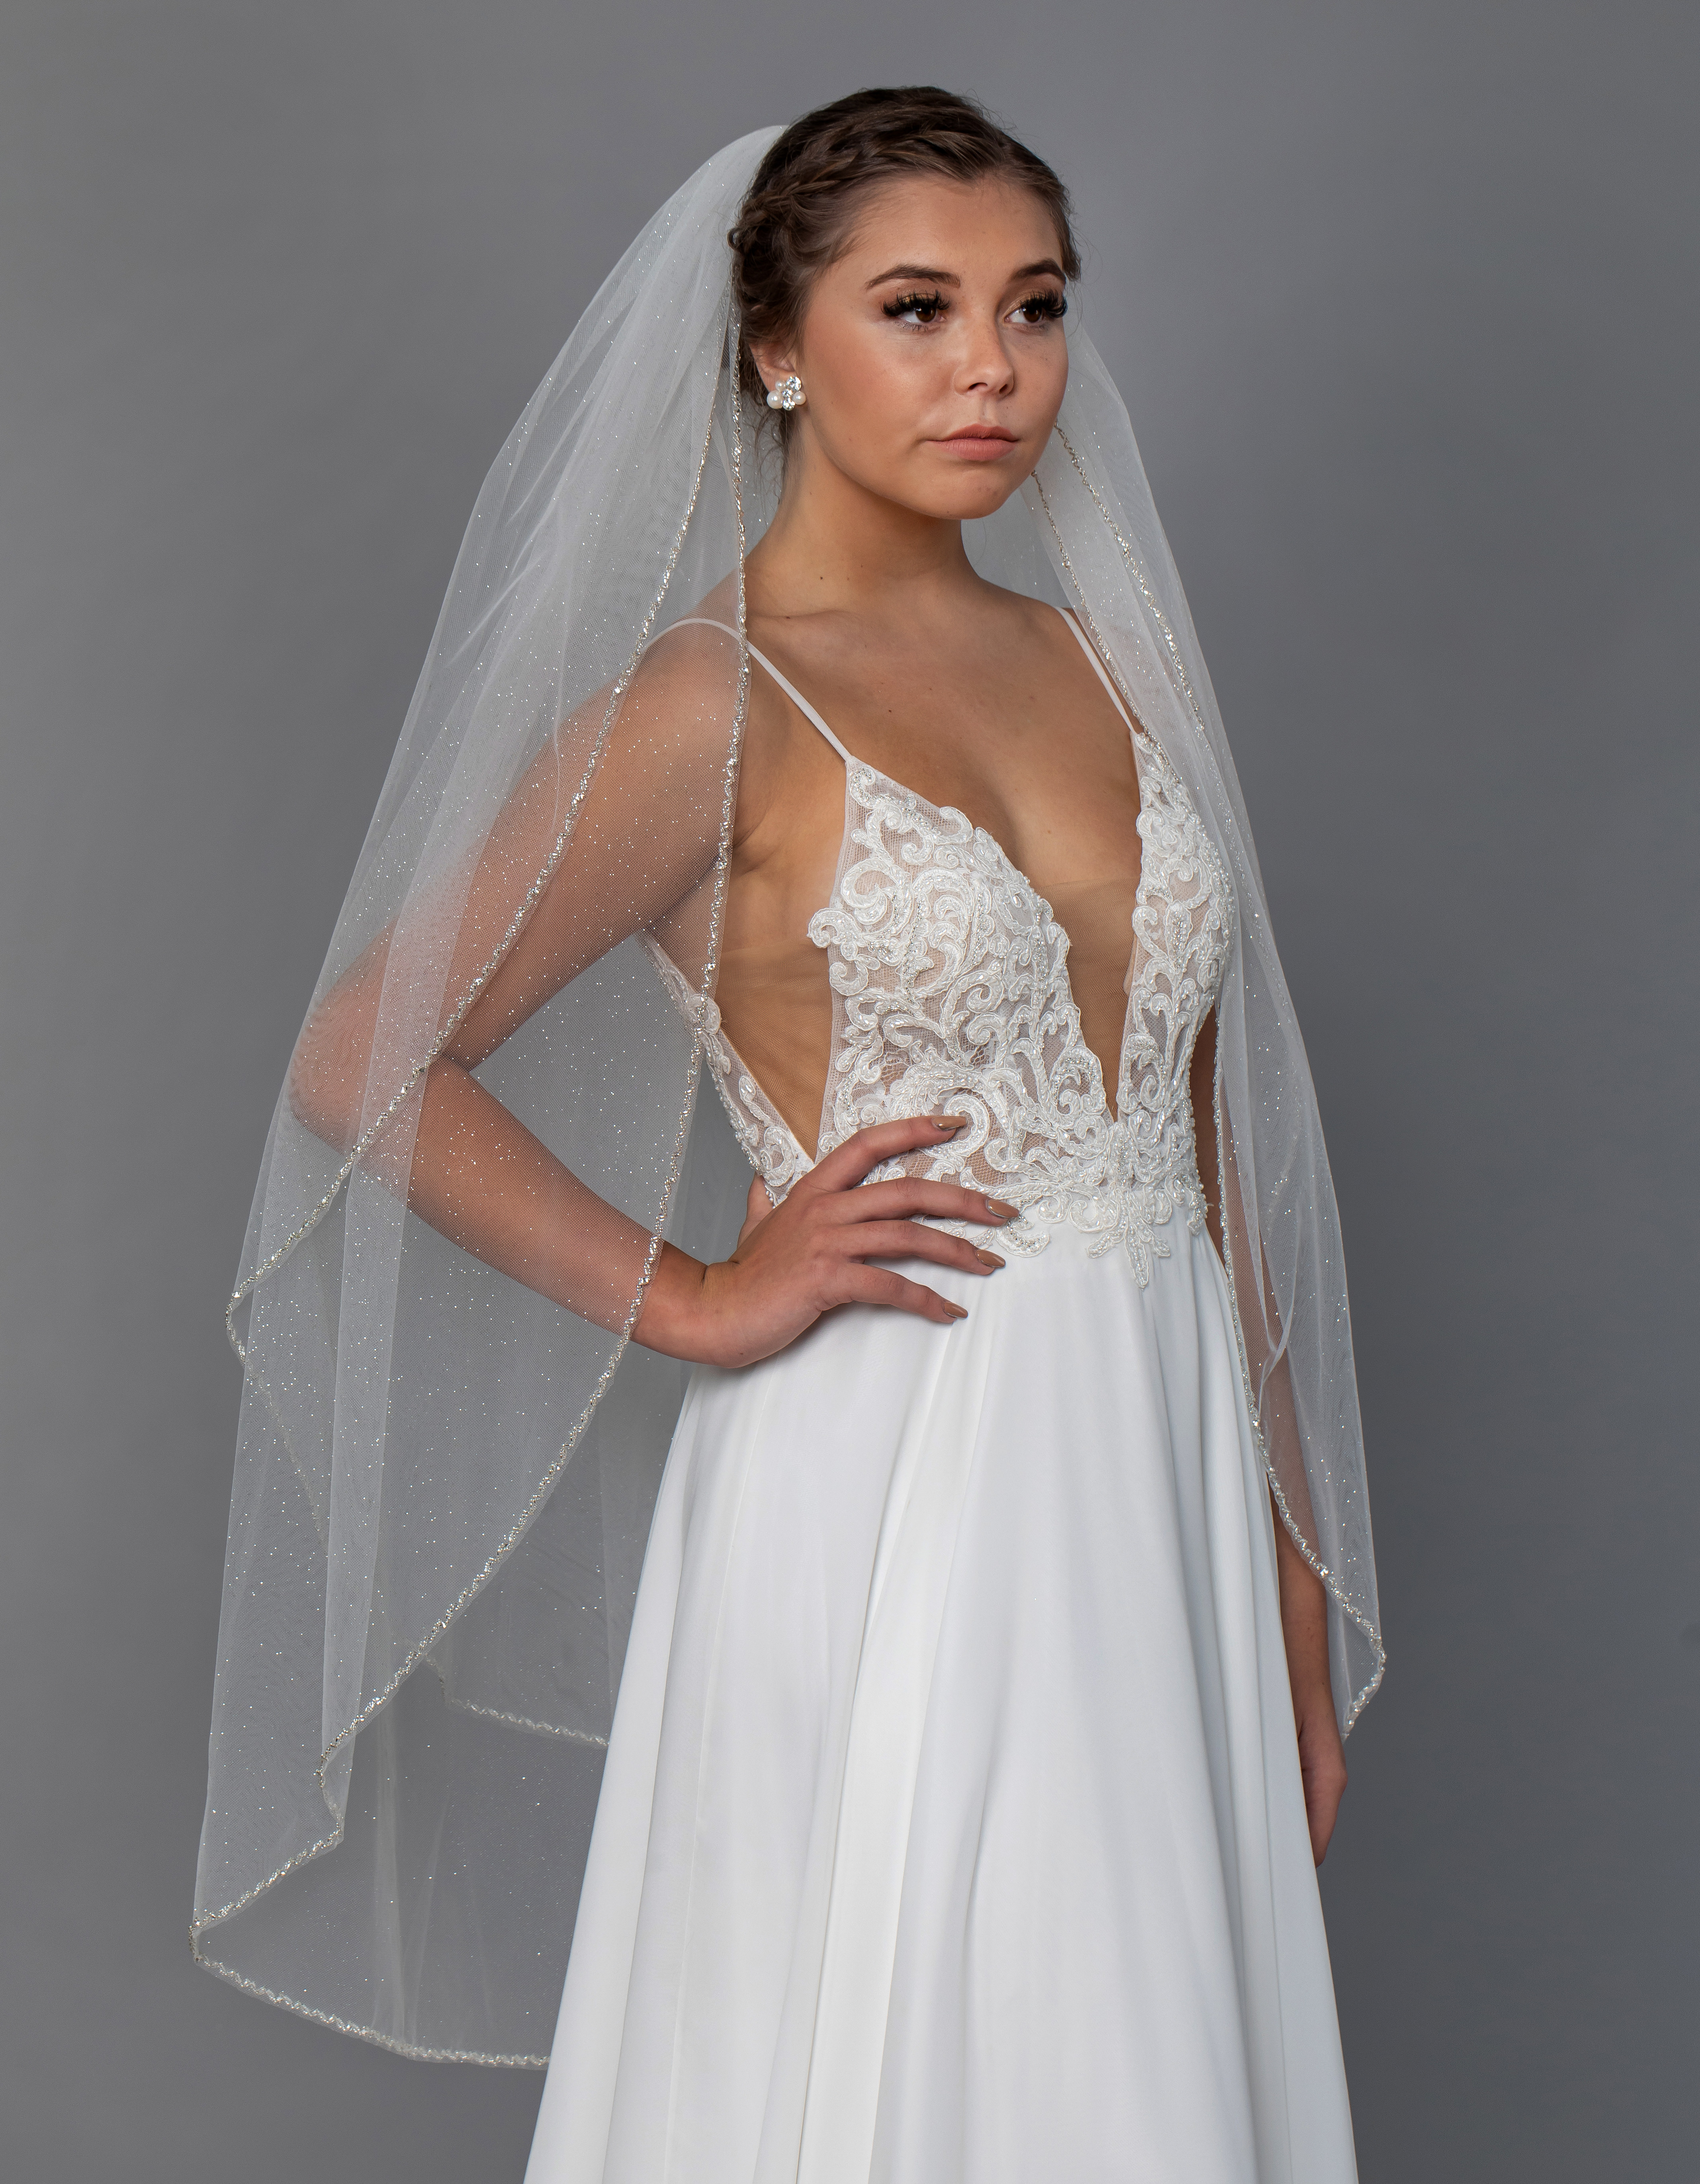 Bridal Classics Marquise Veil Collection MV-2486